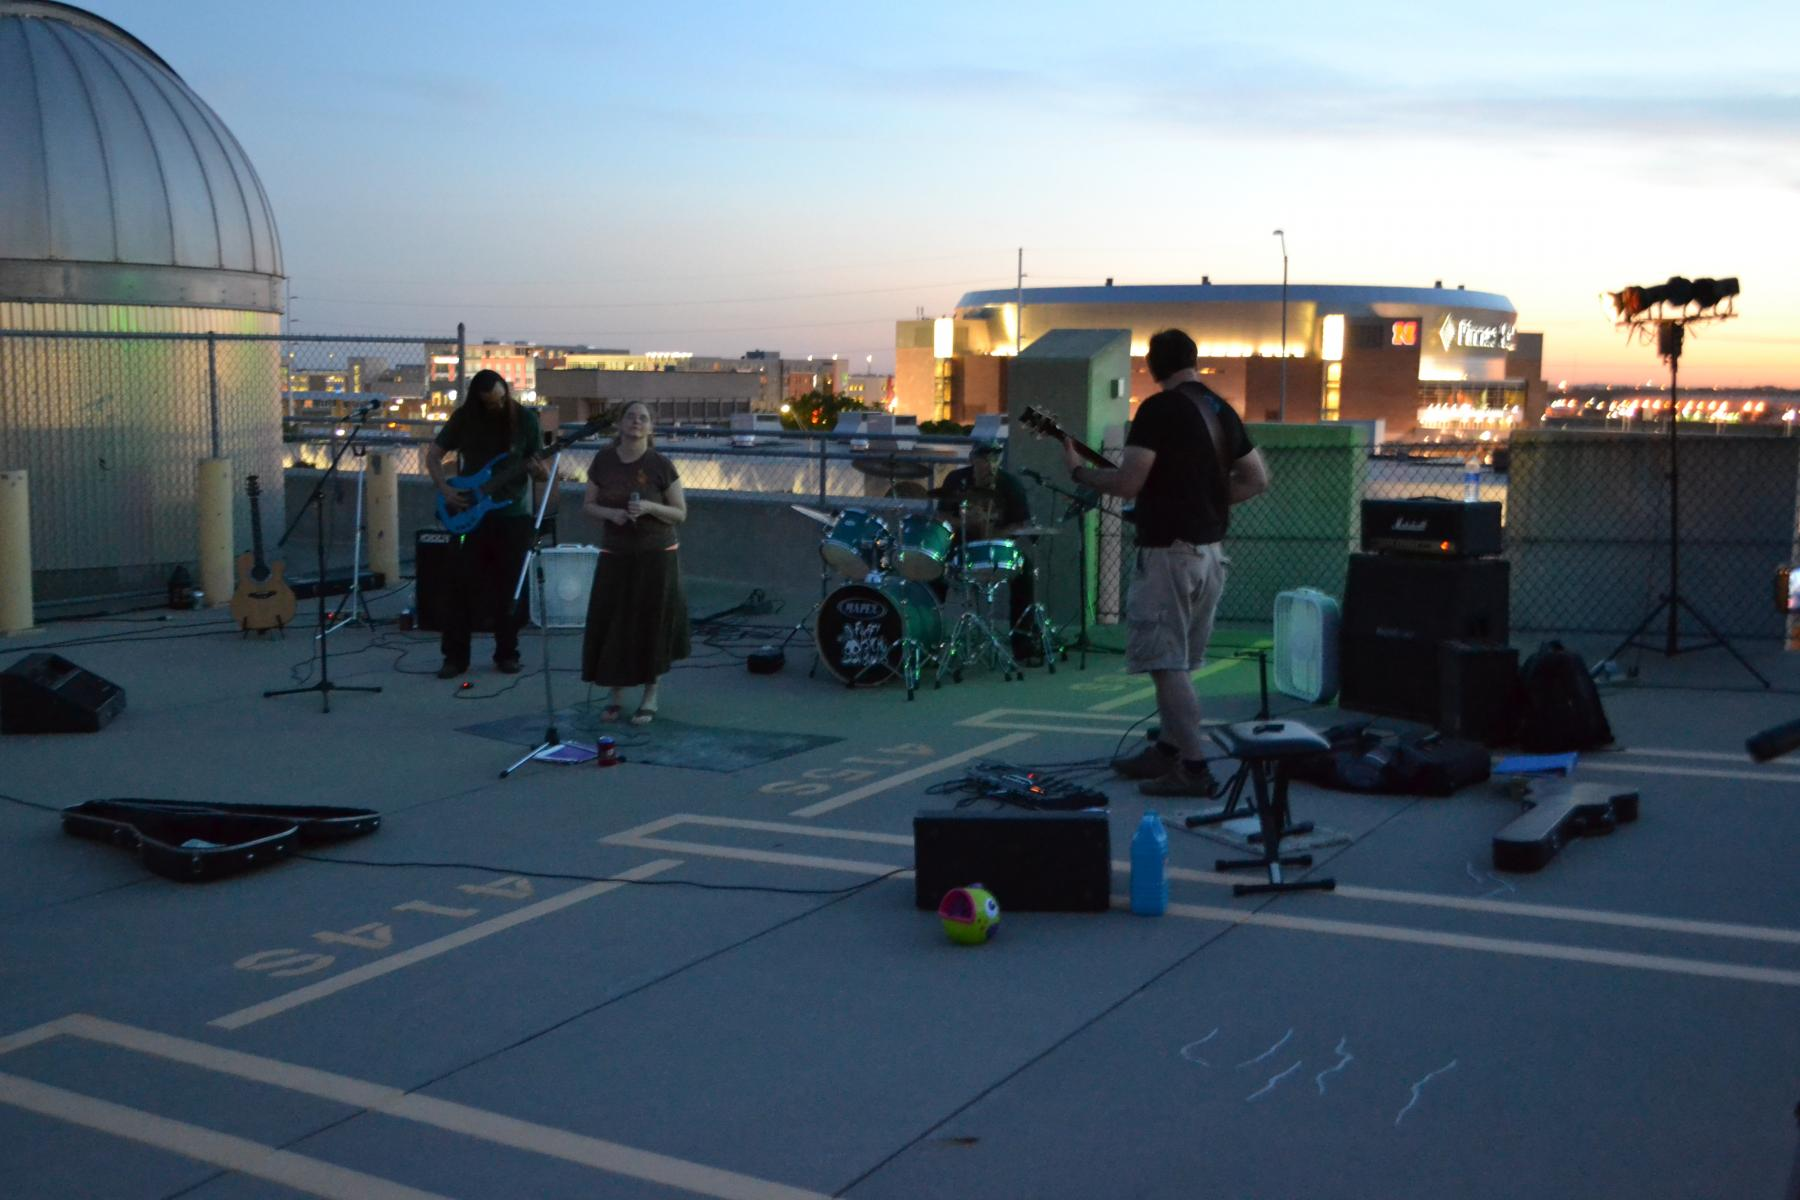 Bandmembers perform next to the Student Observatory.